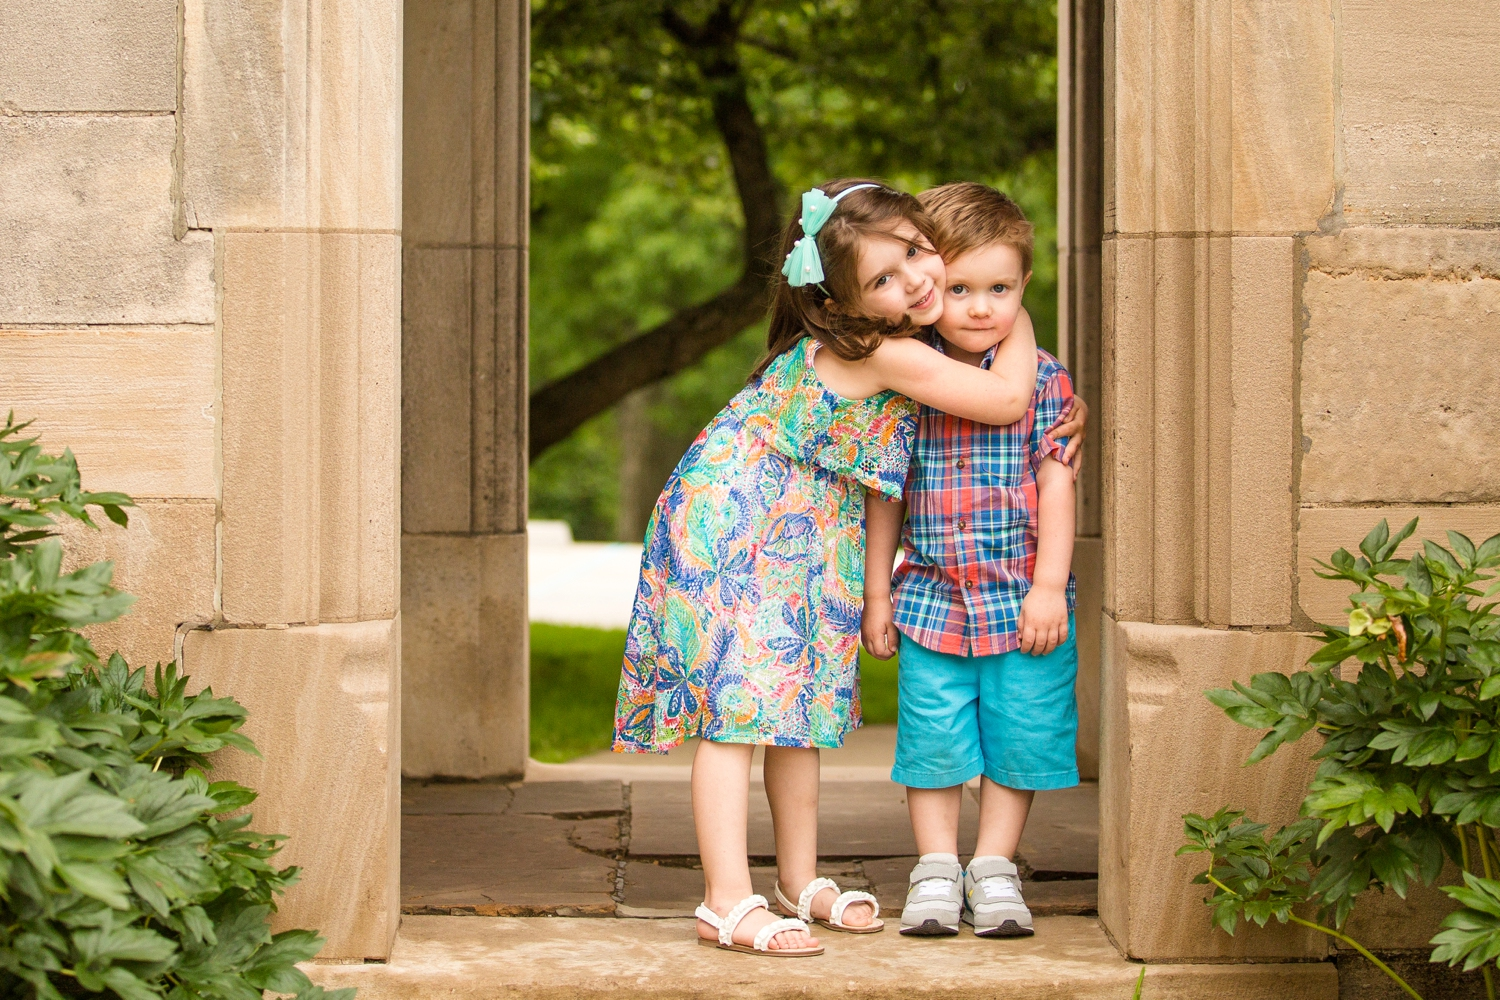 hartwood acres family photos, pittsburgh family photographer, north hills family photographer, cranberry township family photographer